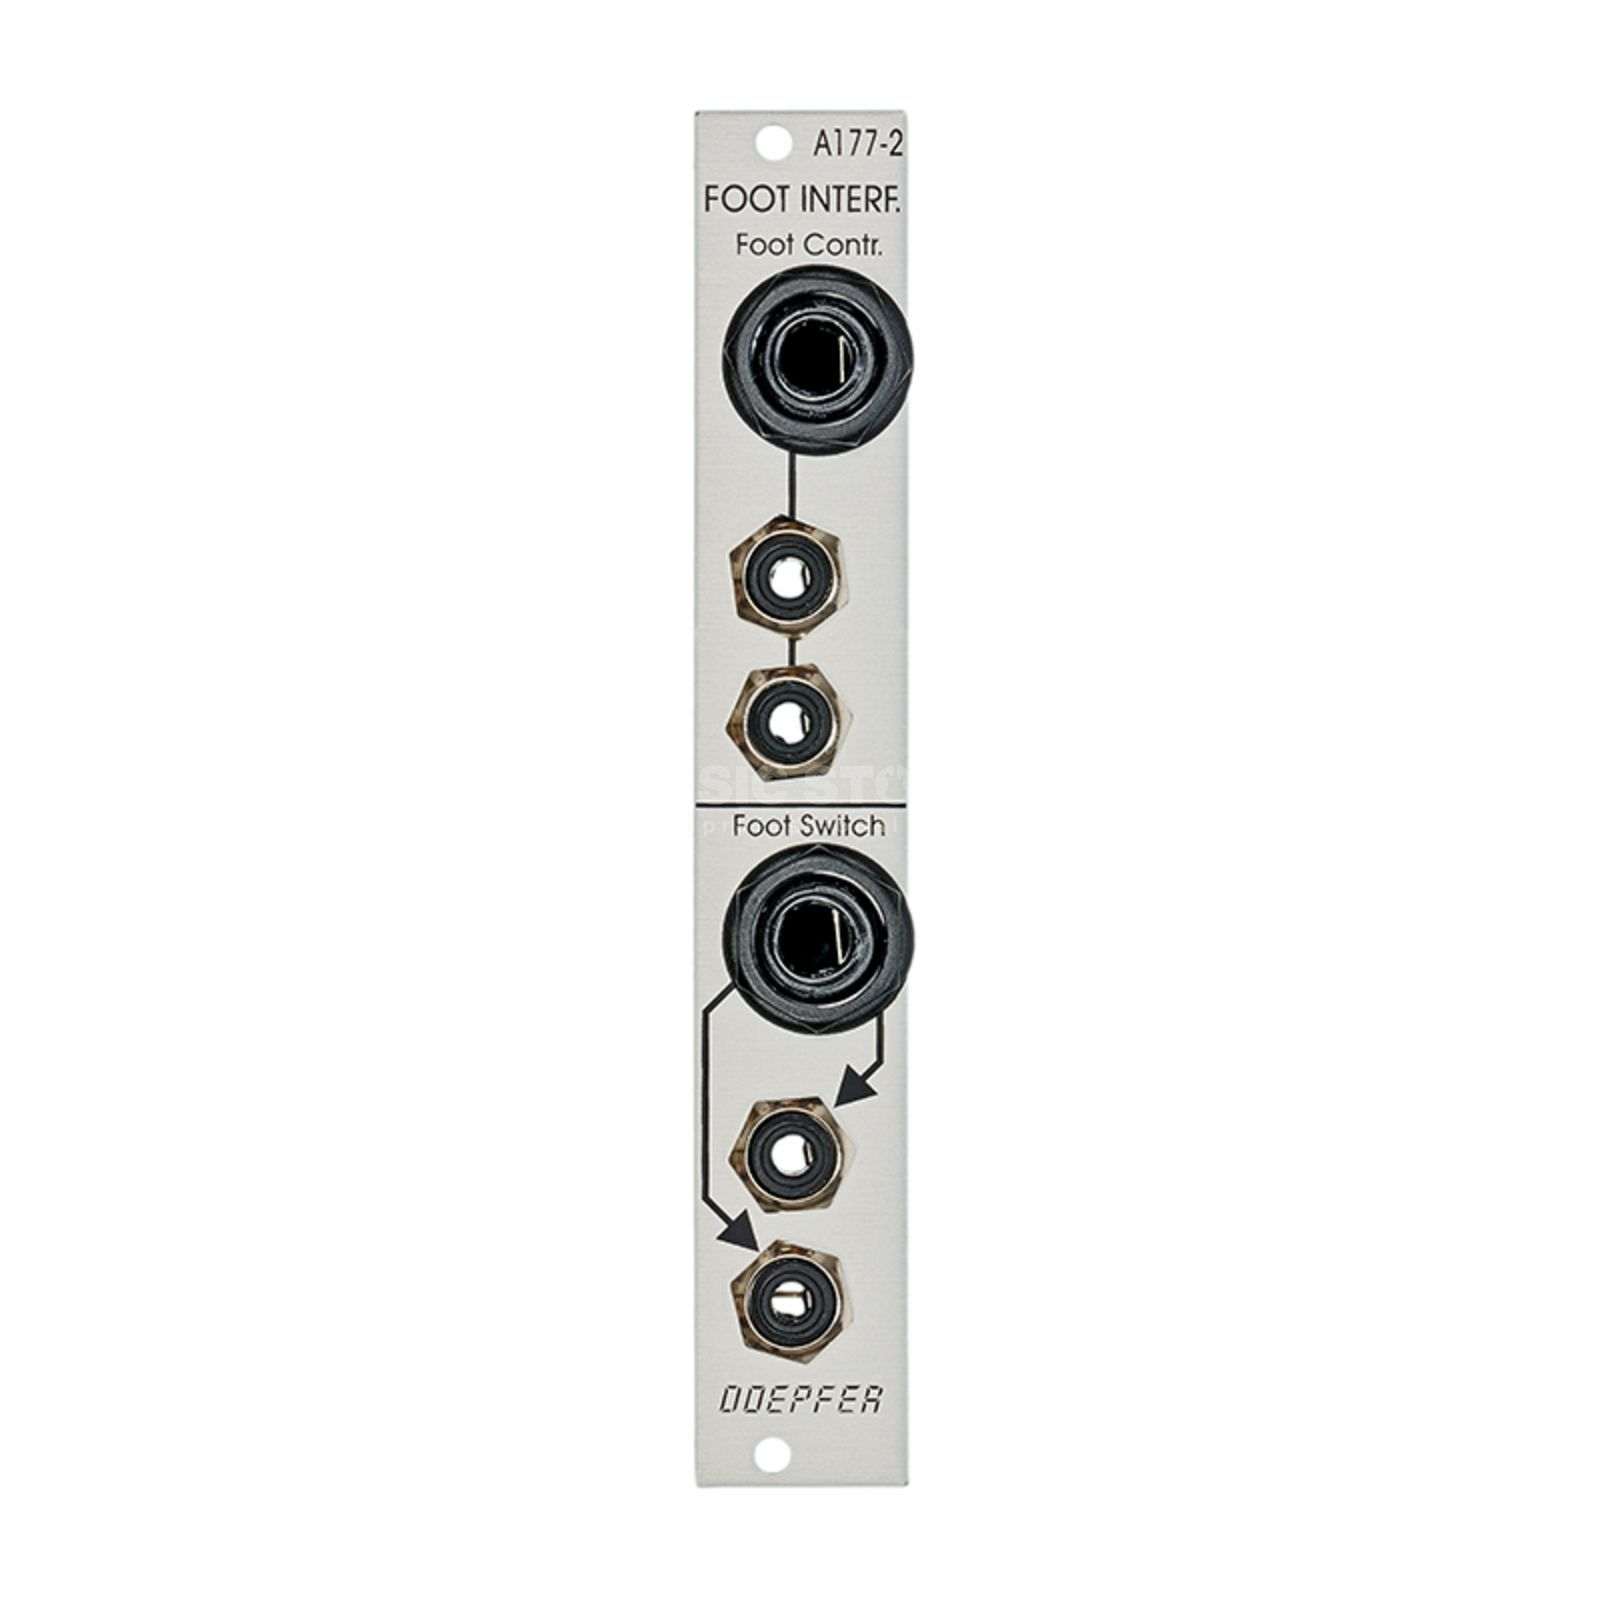 Doepfer A-177-2 Connection module for floorboards and pedals Produktbillede